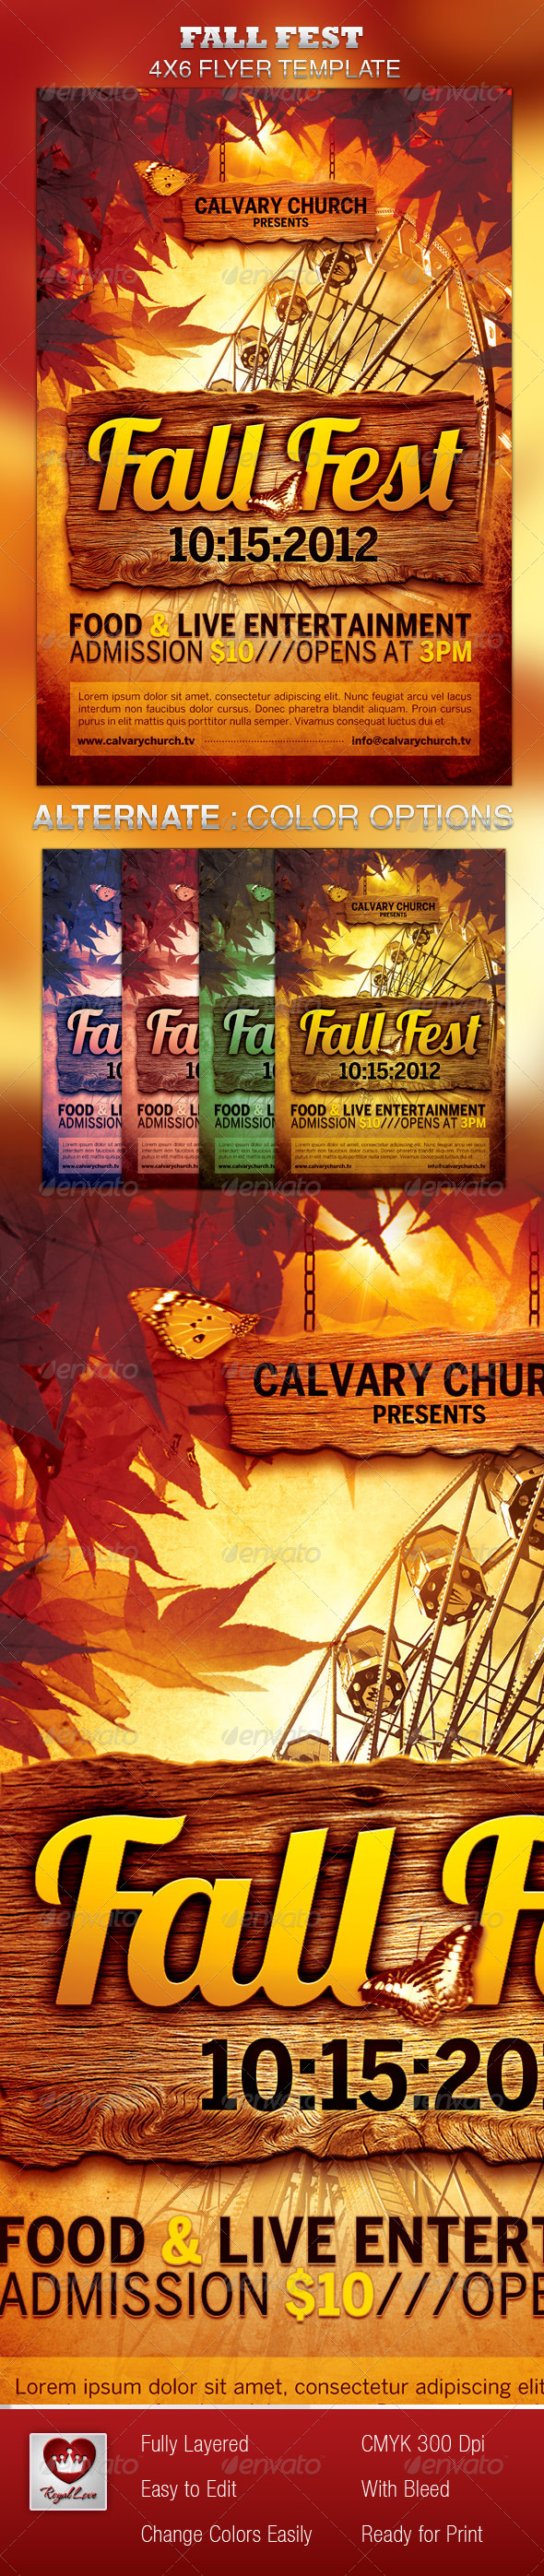 Fall Fest Church Flyer Template - Church Flyers